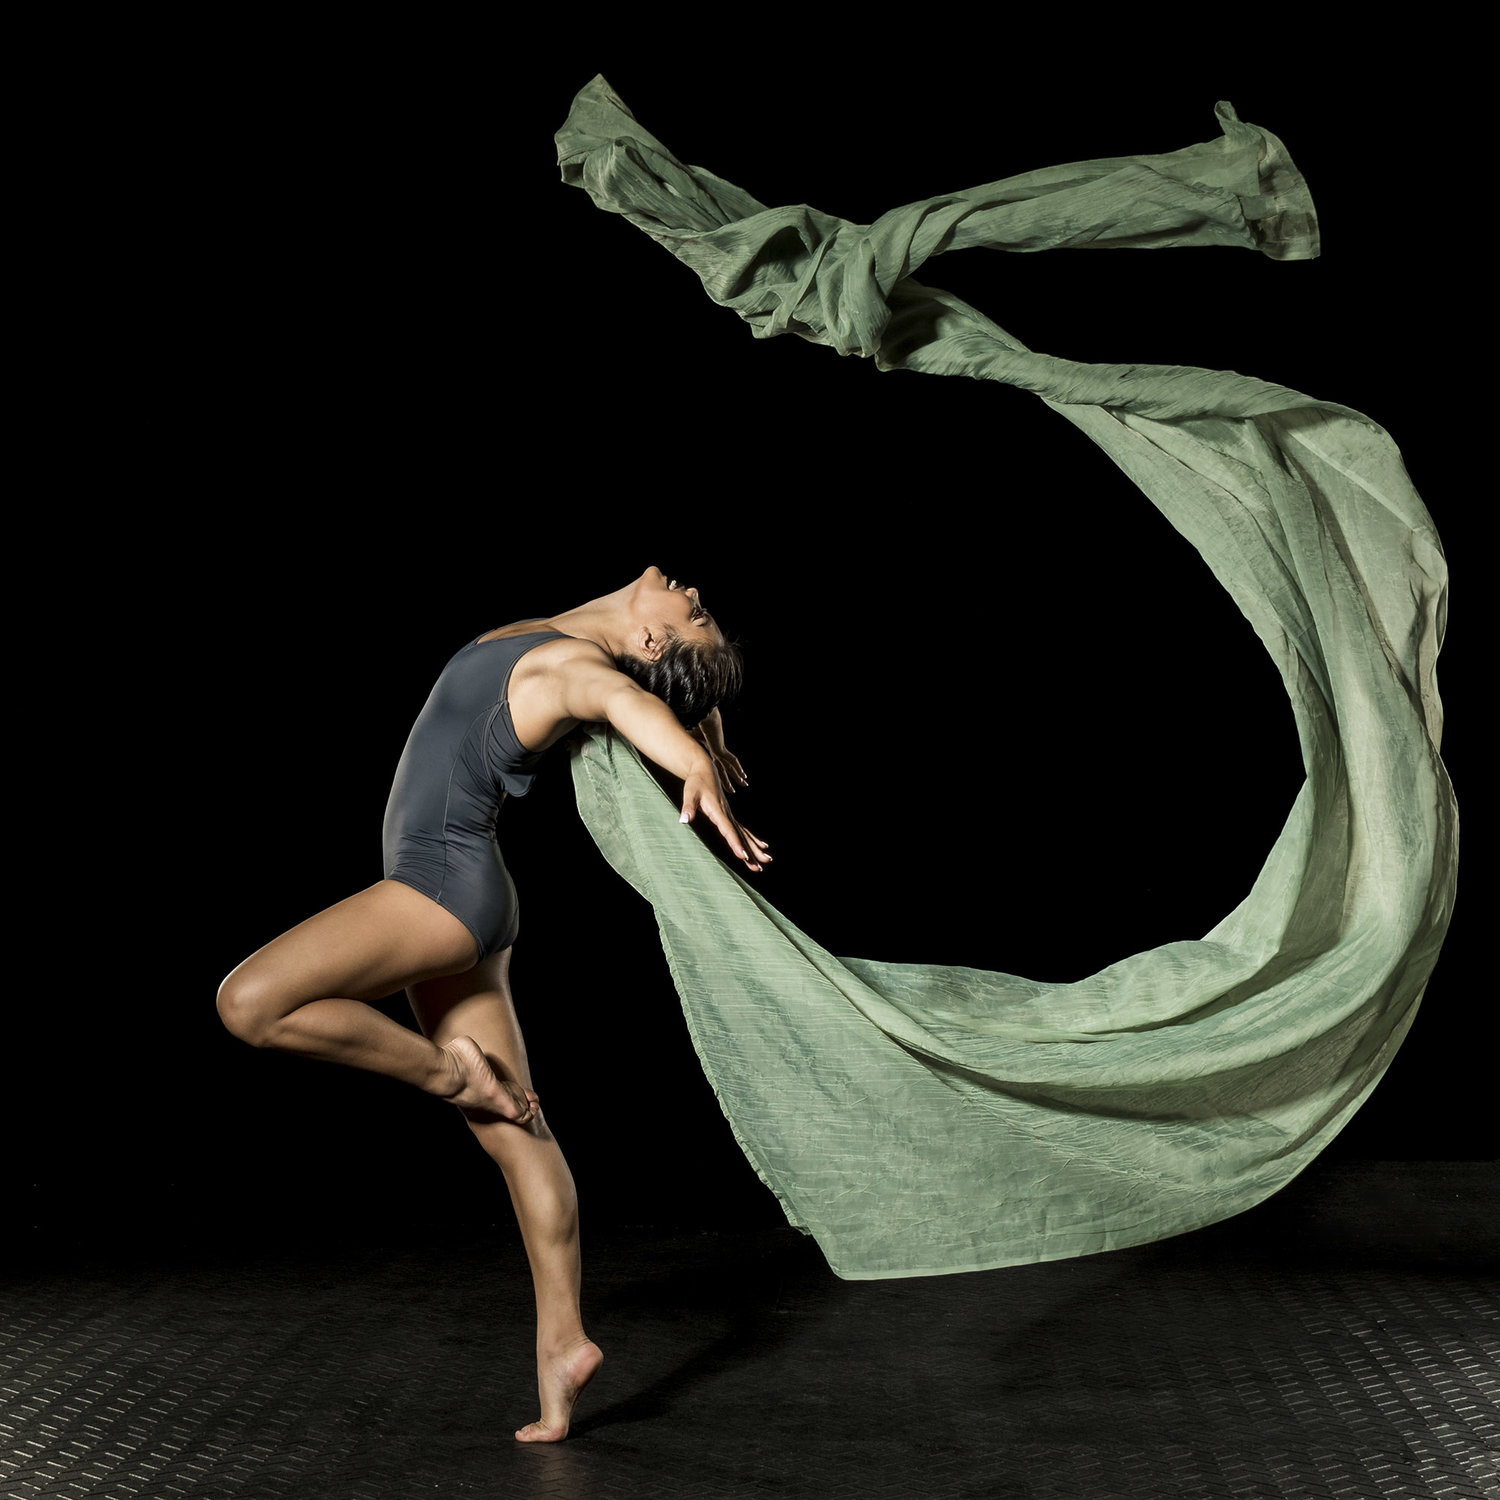 Dancing with fabric